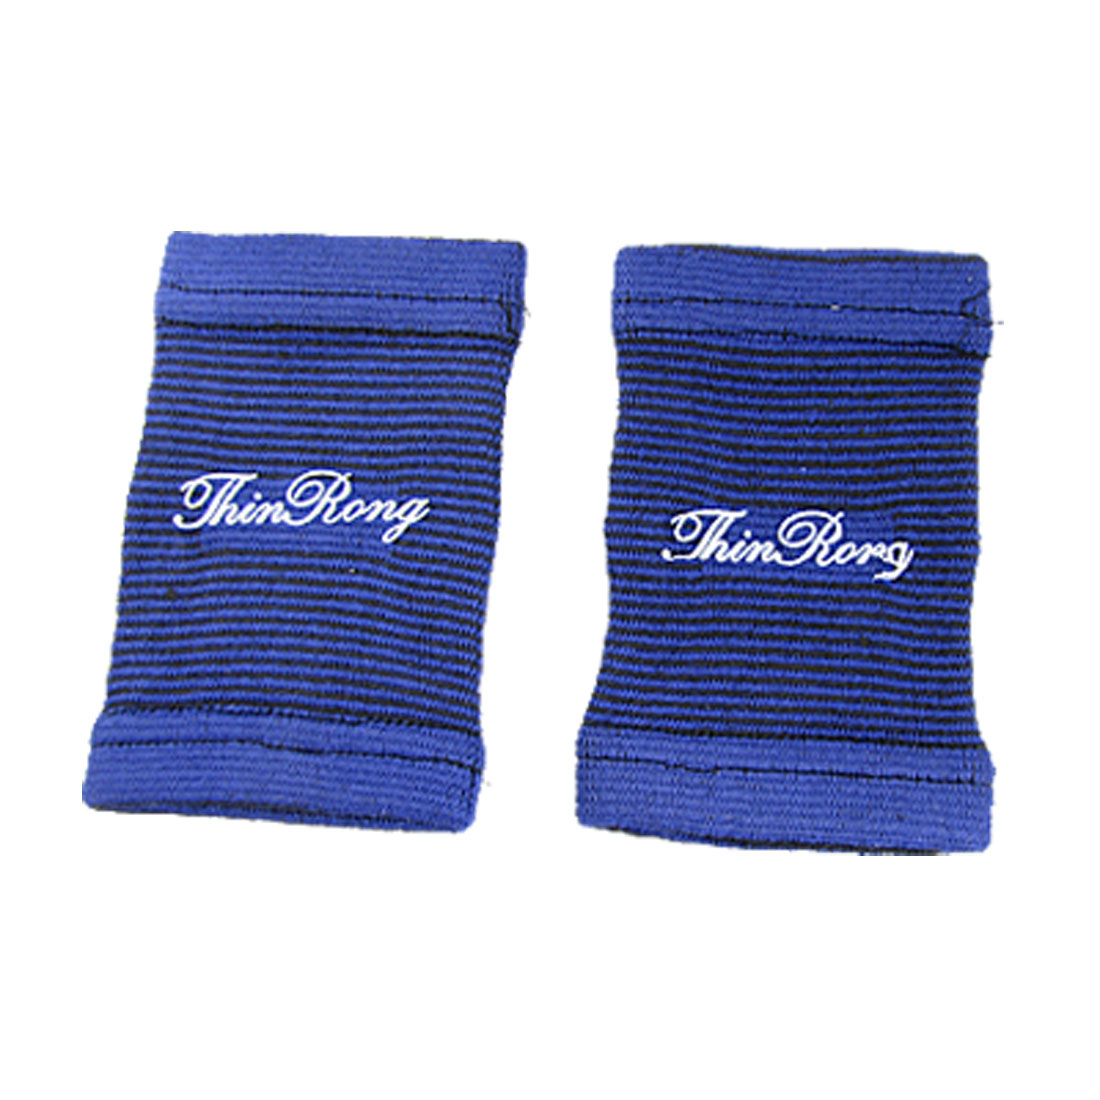 2 Pcs Black Blue Striped Elastic Fabric Wrist Sports Support